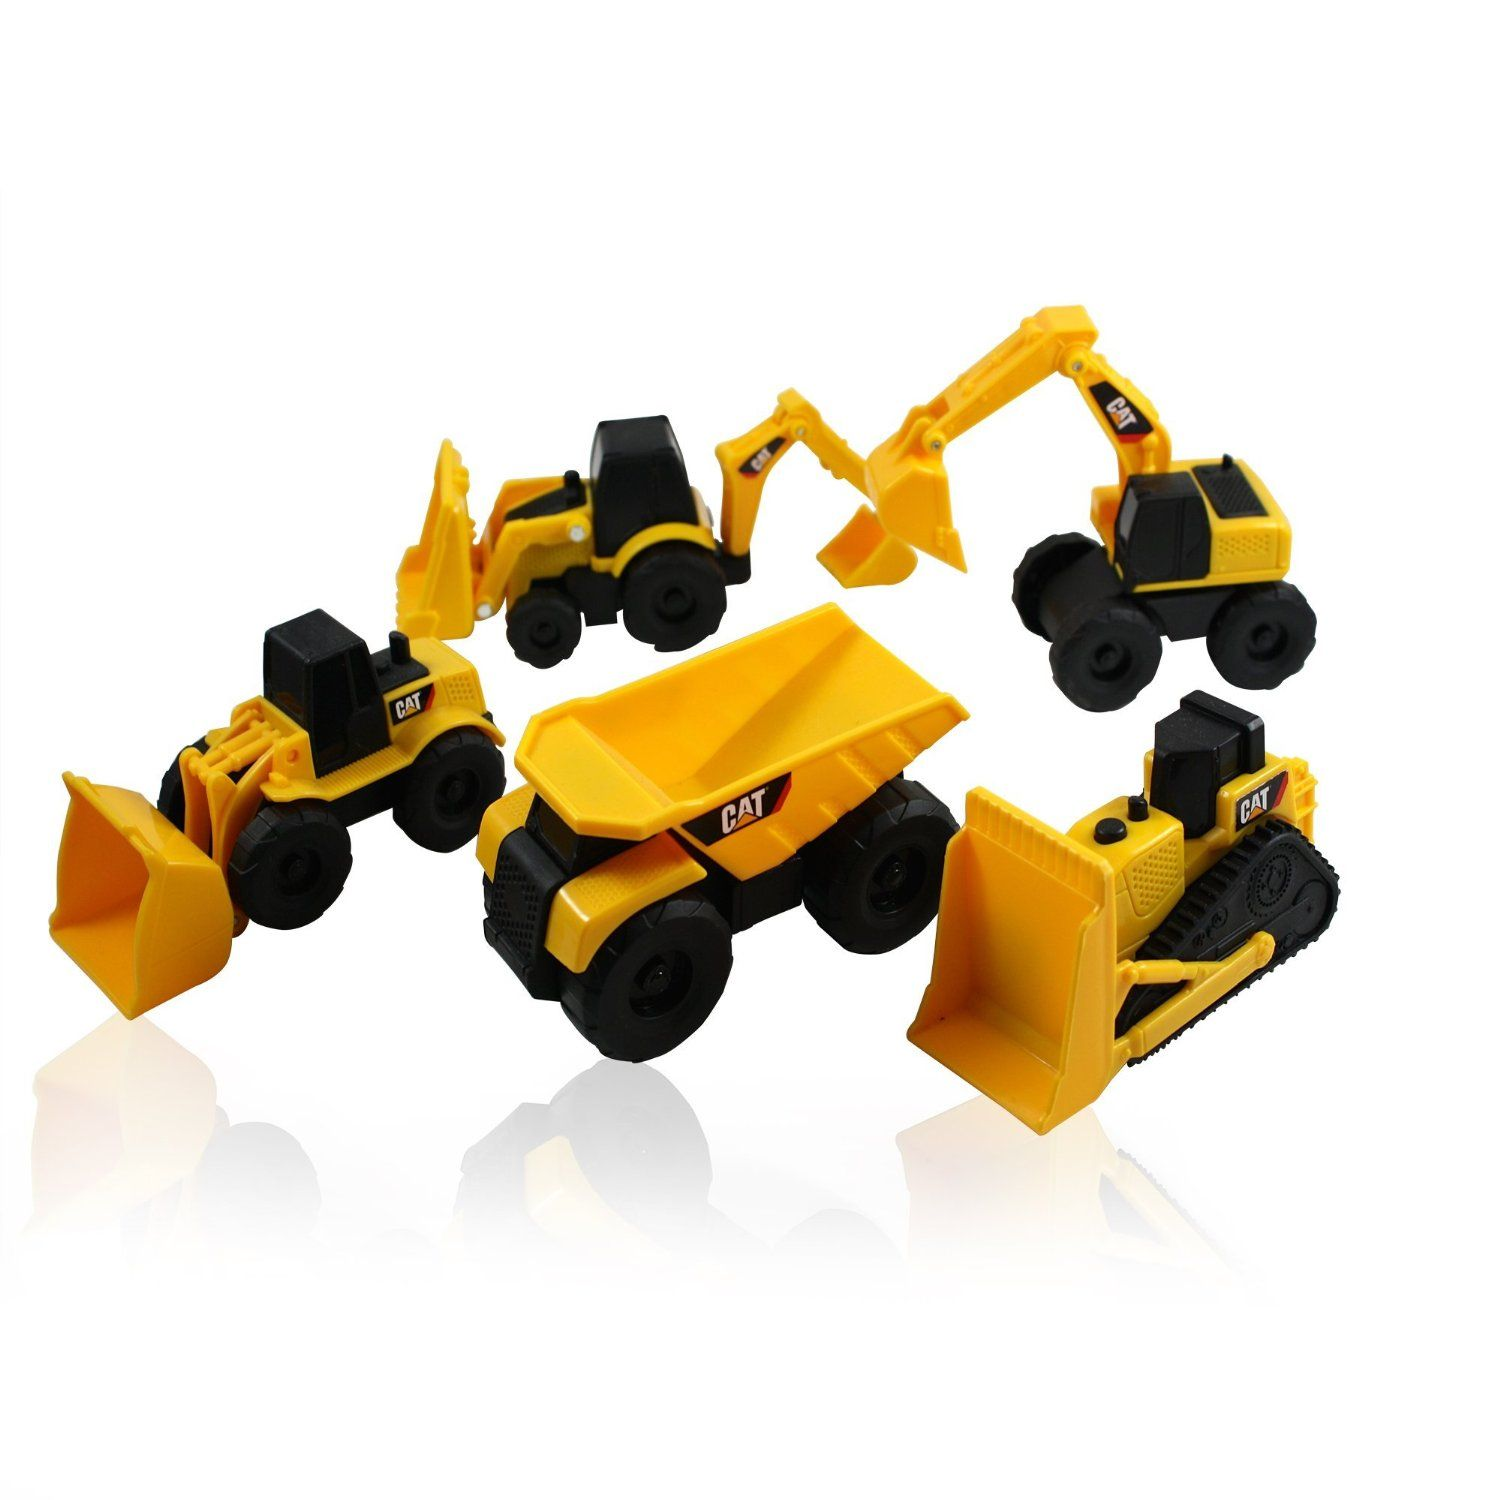 Amazon.com: CAT Mini Machine Caterpillar Construction Truck Toy Cars Set of 5, Dump Truck, Bulldozer, Wheel Loader, Excavator and Backhoe Free-Wheeling Vehicles w/Moving Parts -Great Cake Toppers: Toys & Games